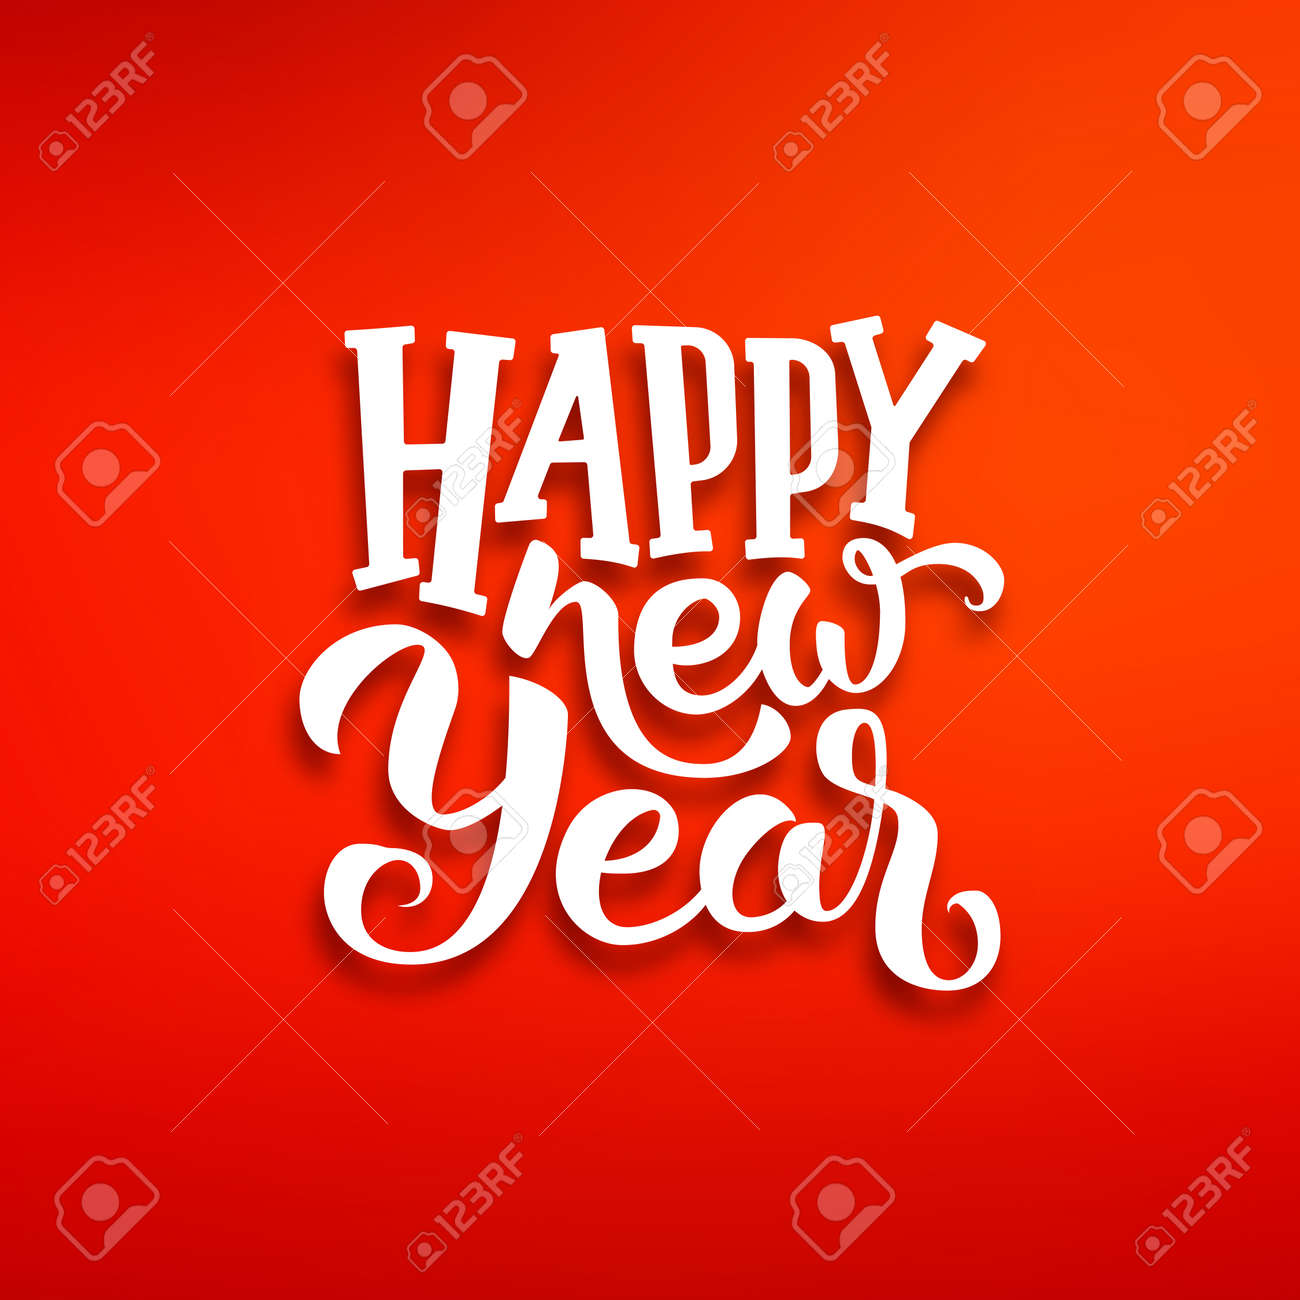 Happy New Year Greeting Card Design With White Lettering On Red